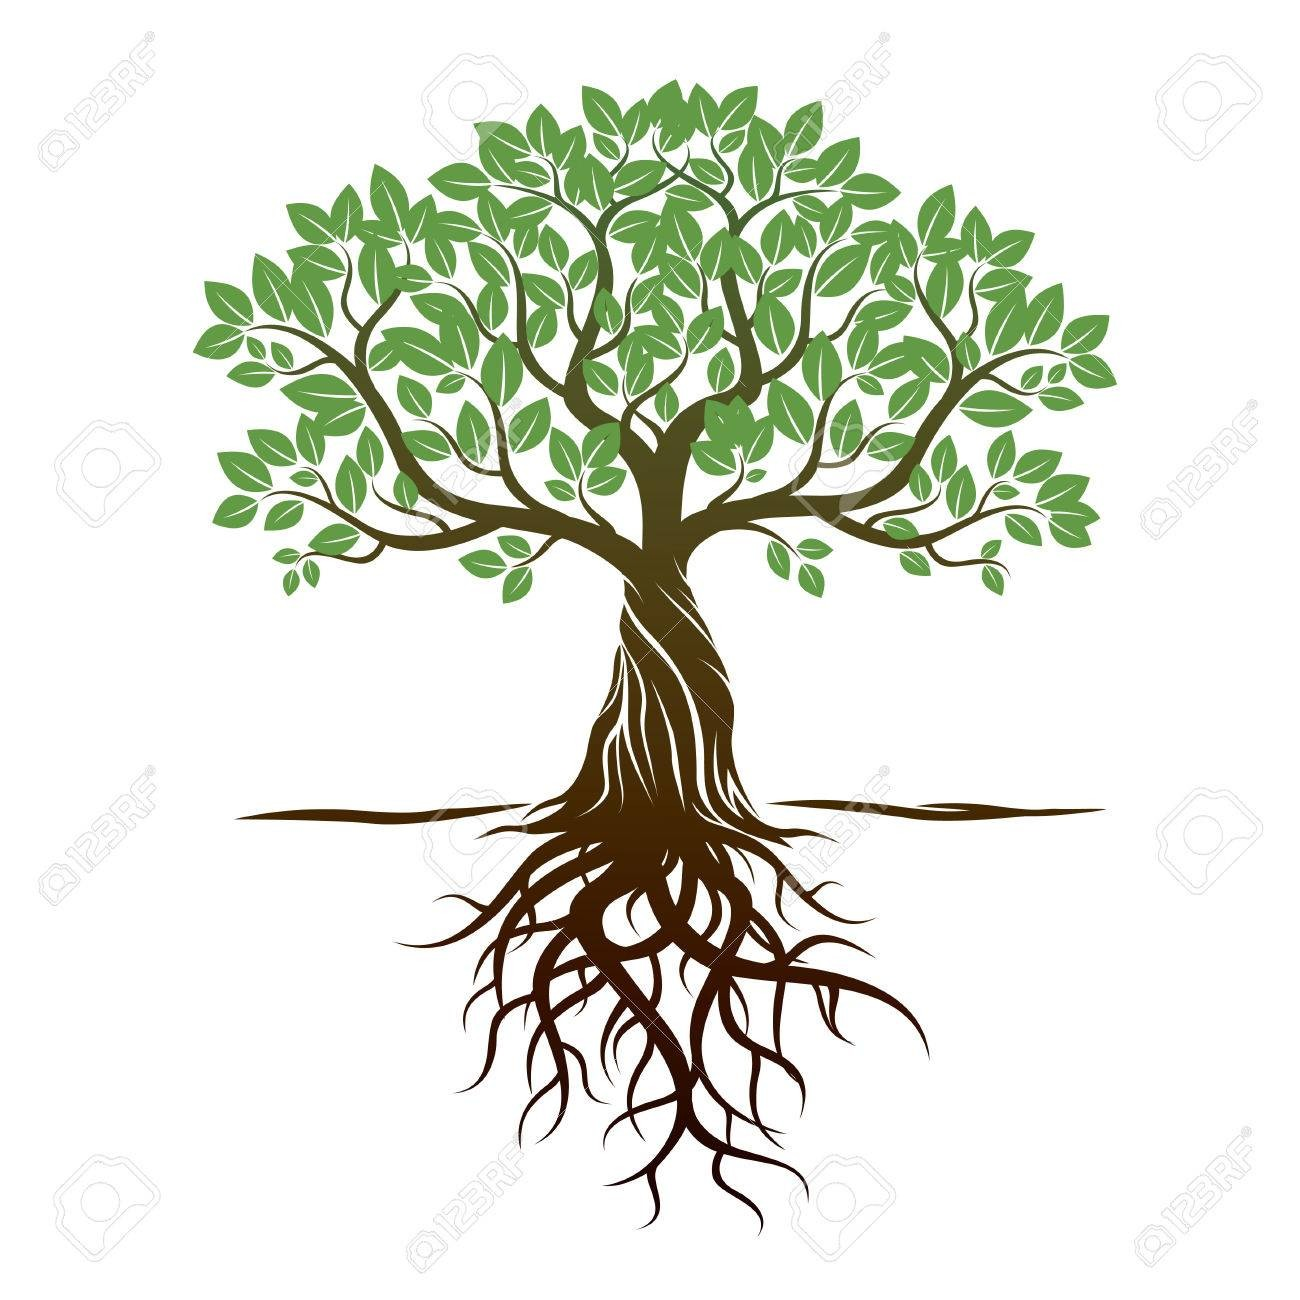 roots clipart at getdrawings com free for personal use roots rh getdrawings com family tree with roots clip art apple tree with roots clipart